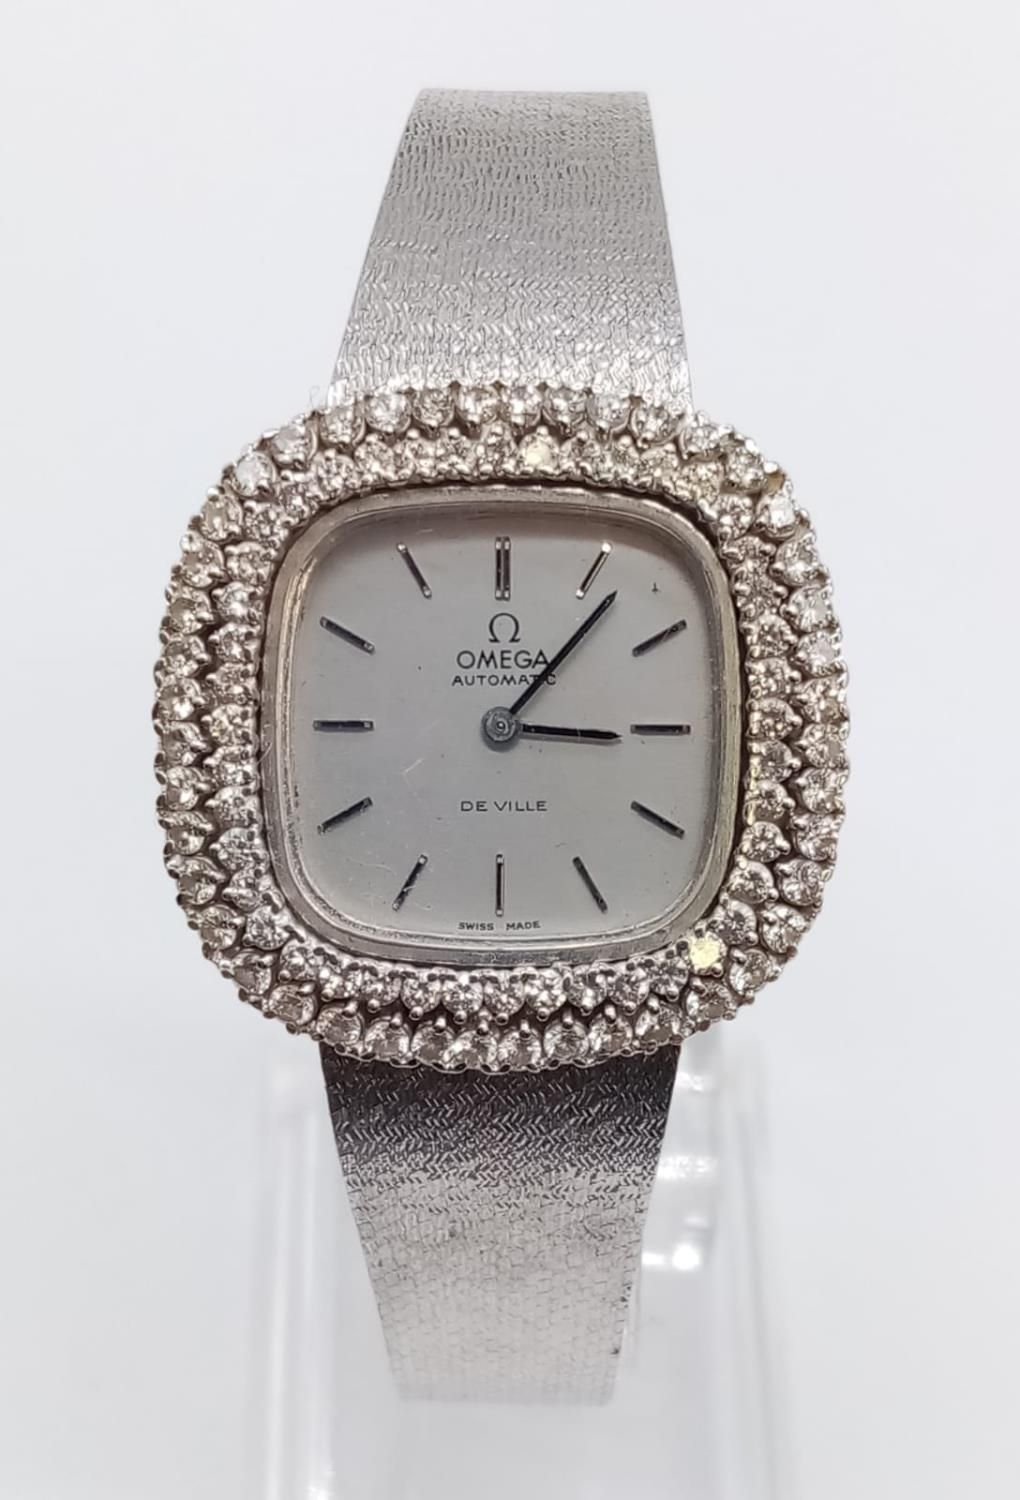 Vintage 18ct white gold OMEGA de Ville ladies automatic watch, square face with diamond encrusted